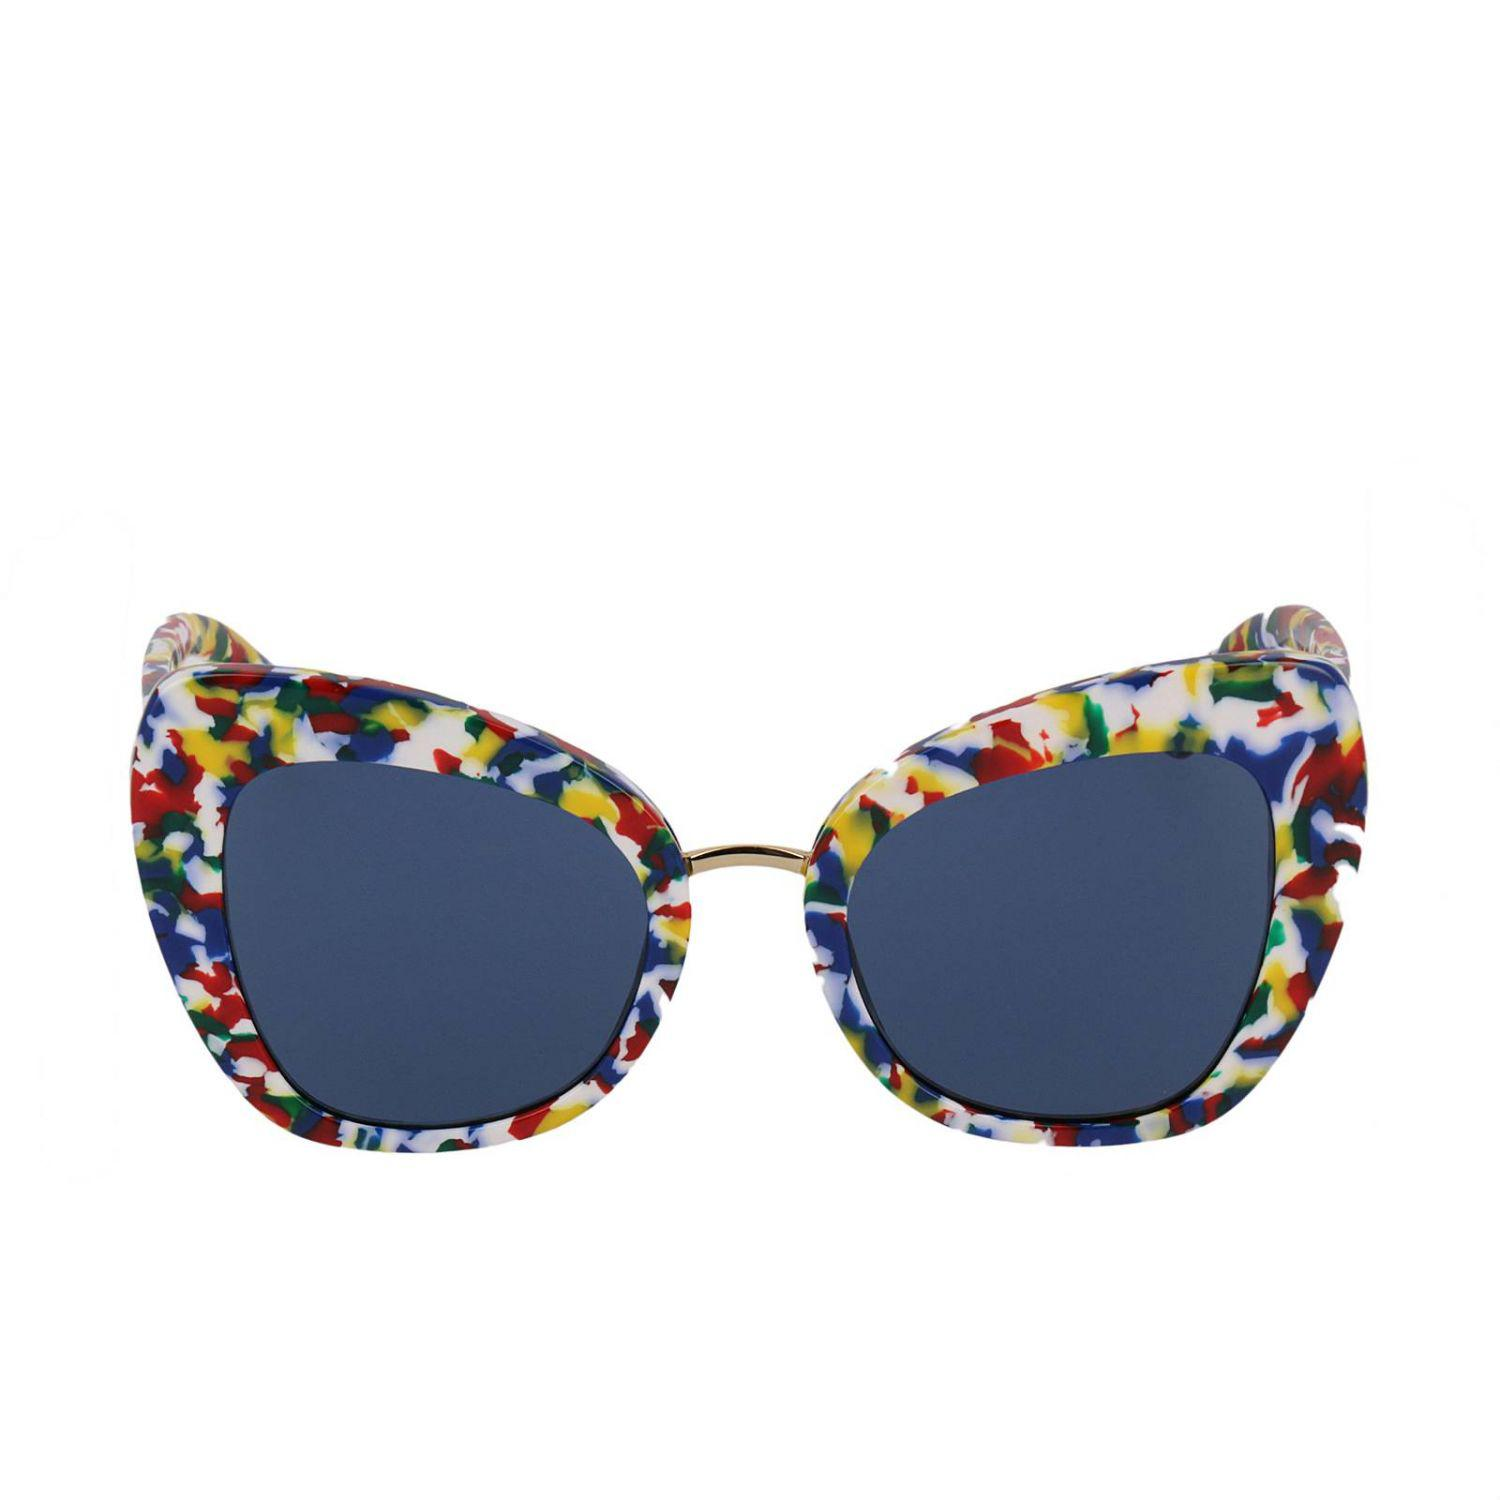 Dolce & Gabbana 51mm Butterfly Sunglasses in Blue